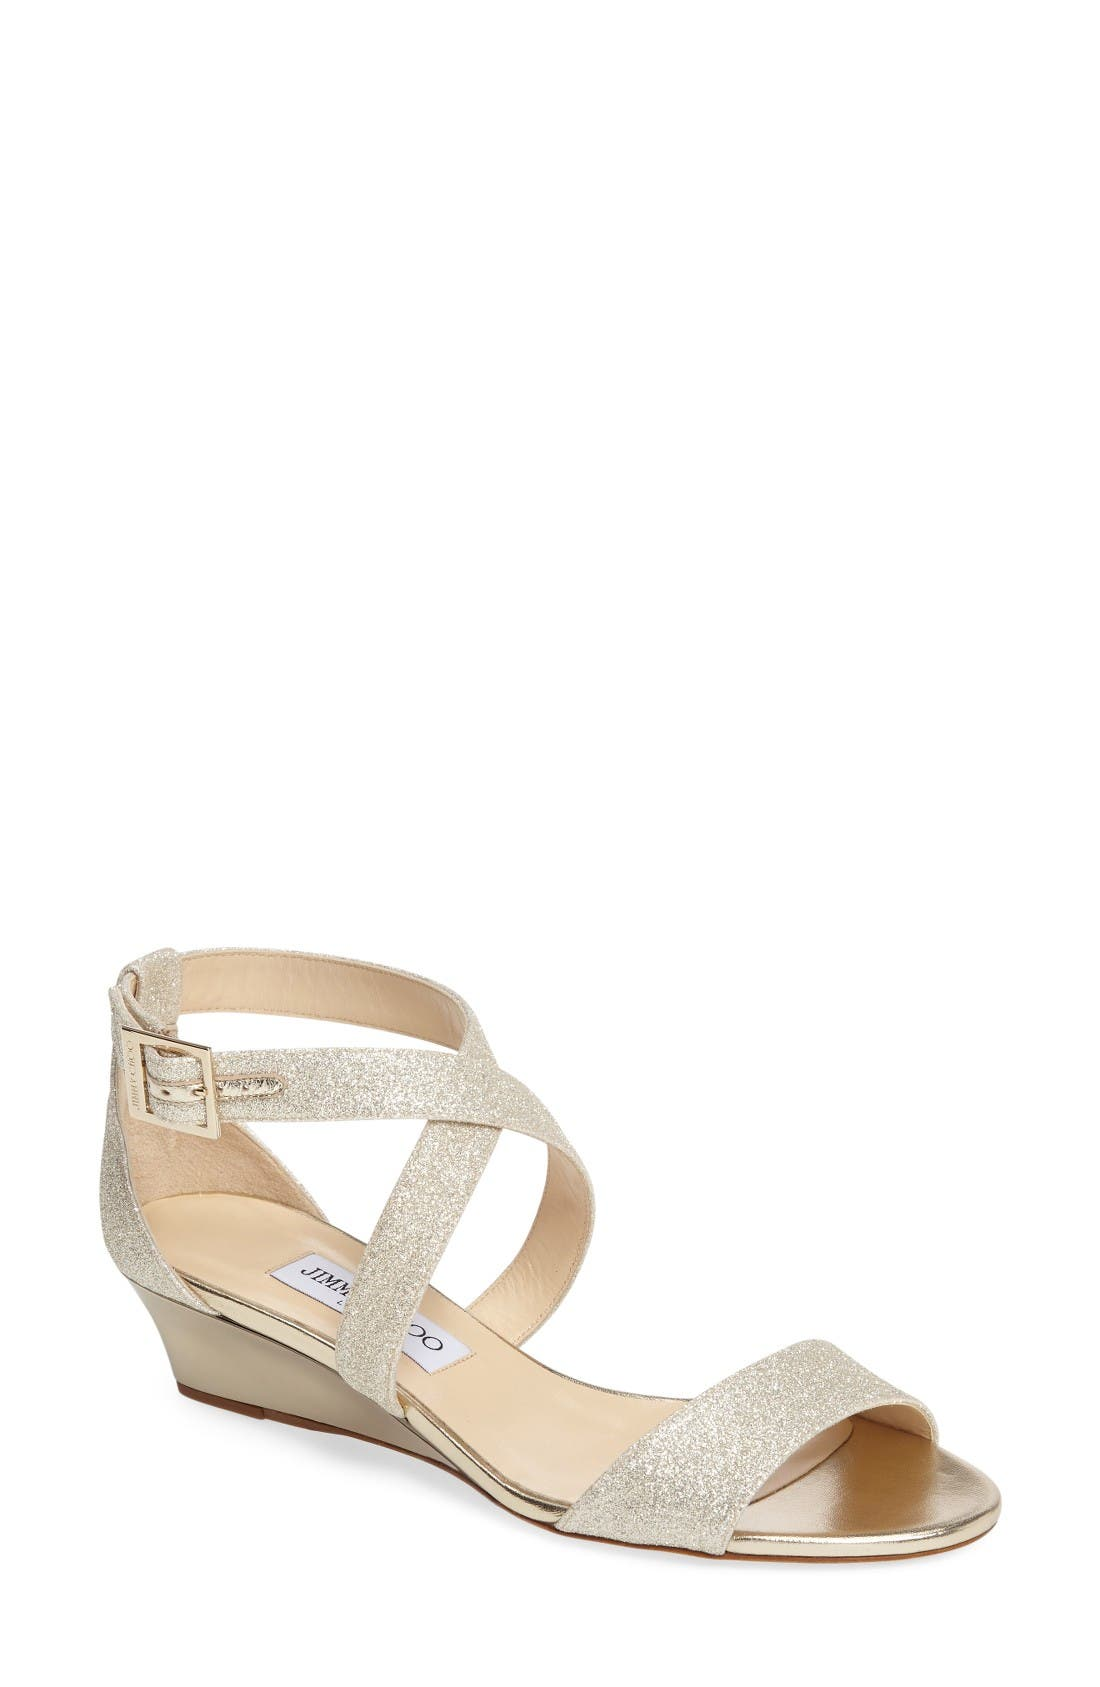 JIMMY CHOO 'Chiara' Strap Wedge Sandal